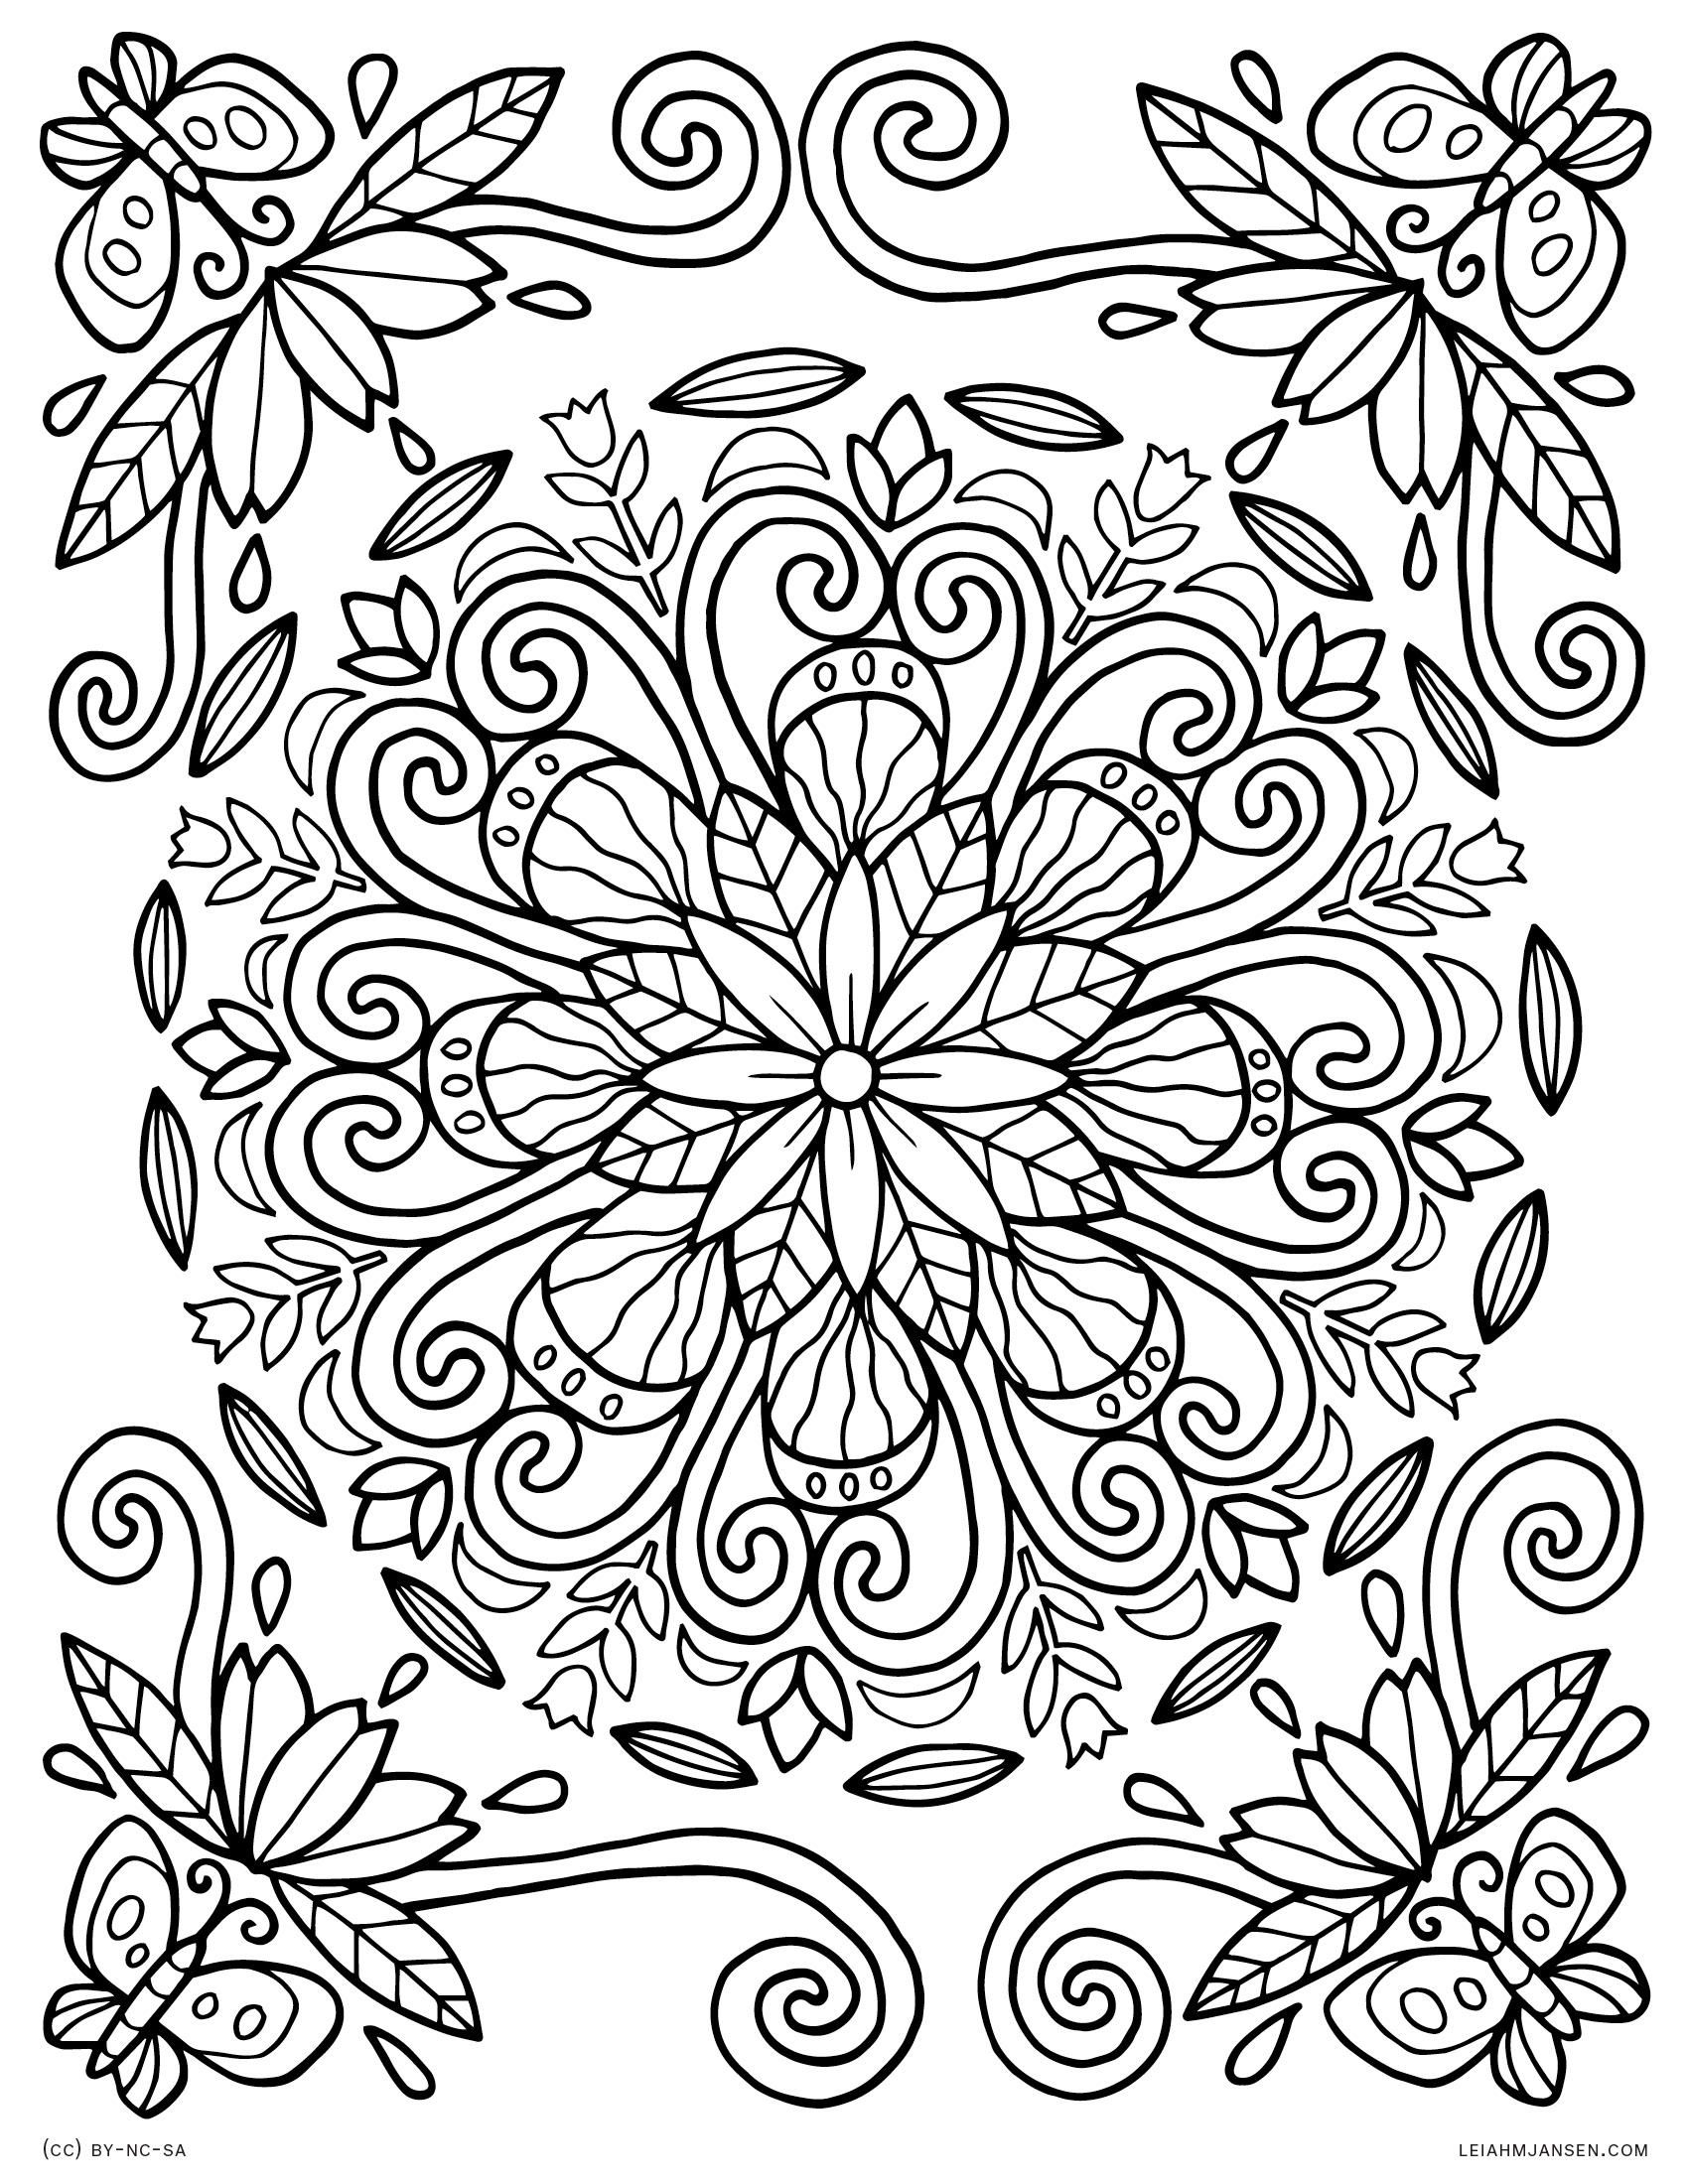 Free Coloring Pages - Free Printable Mandala Coloring Pages